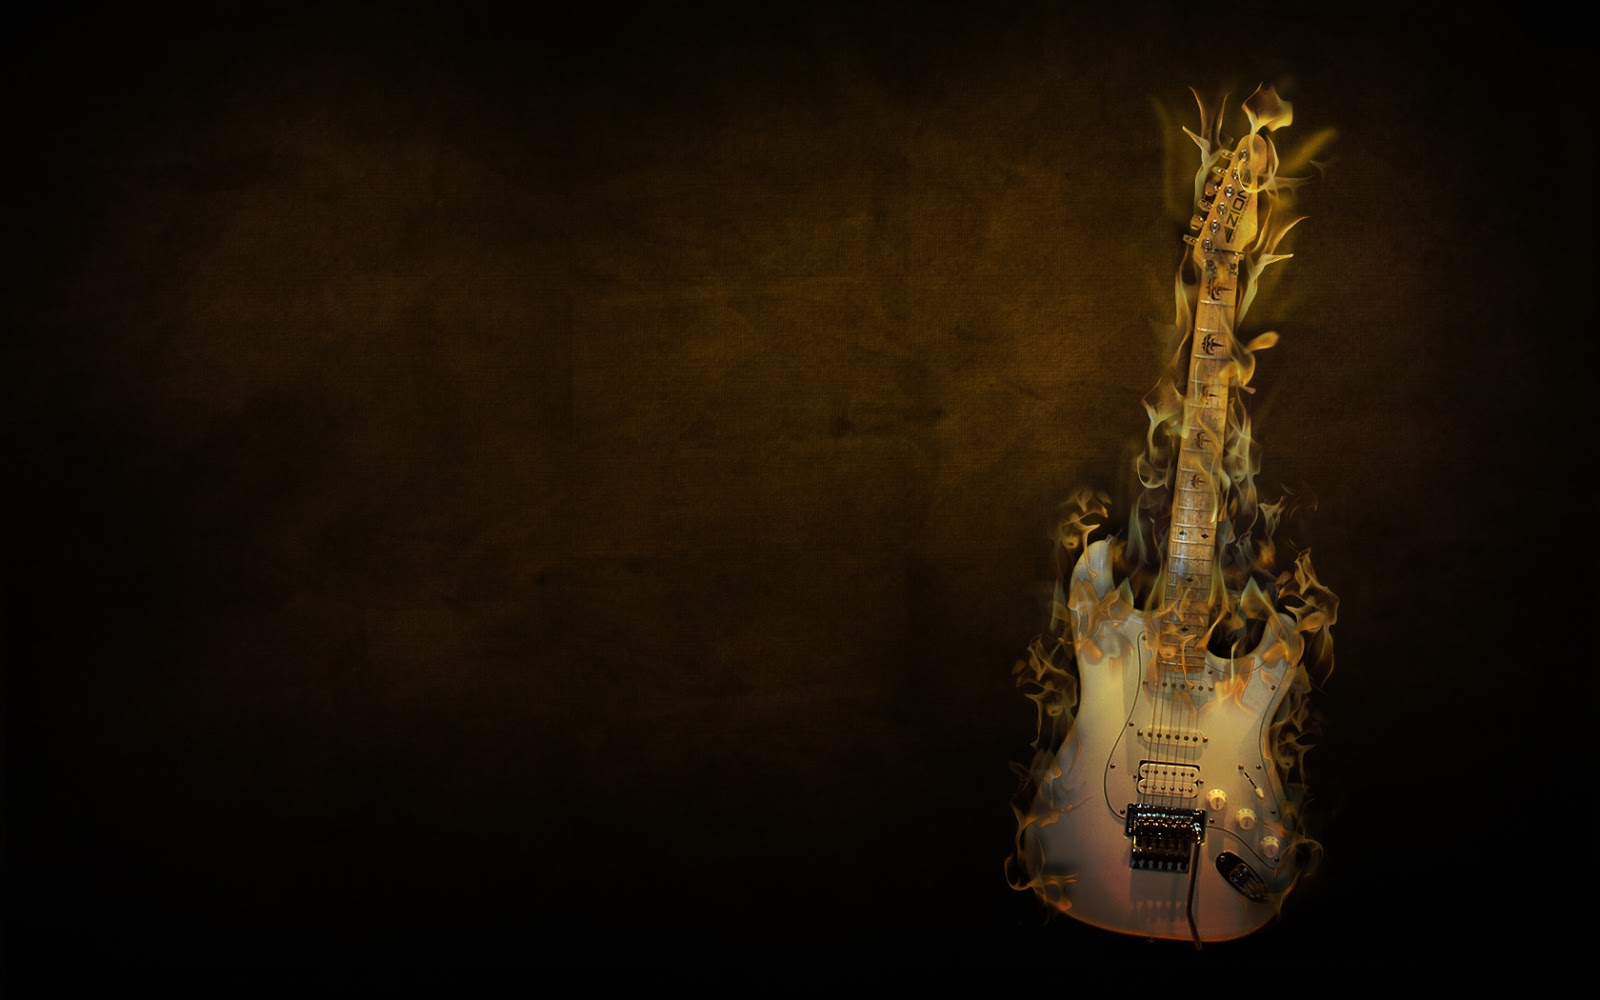 Background Guitar Music ~ Background Kindle Pics